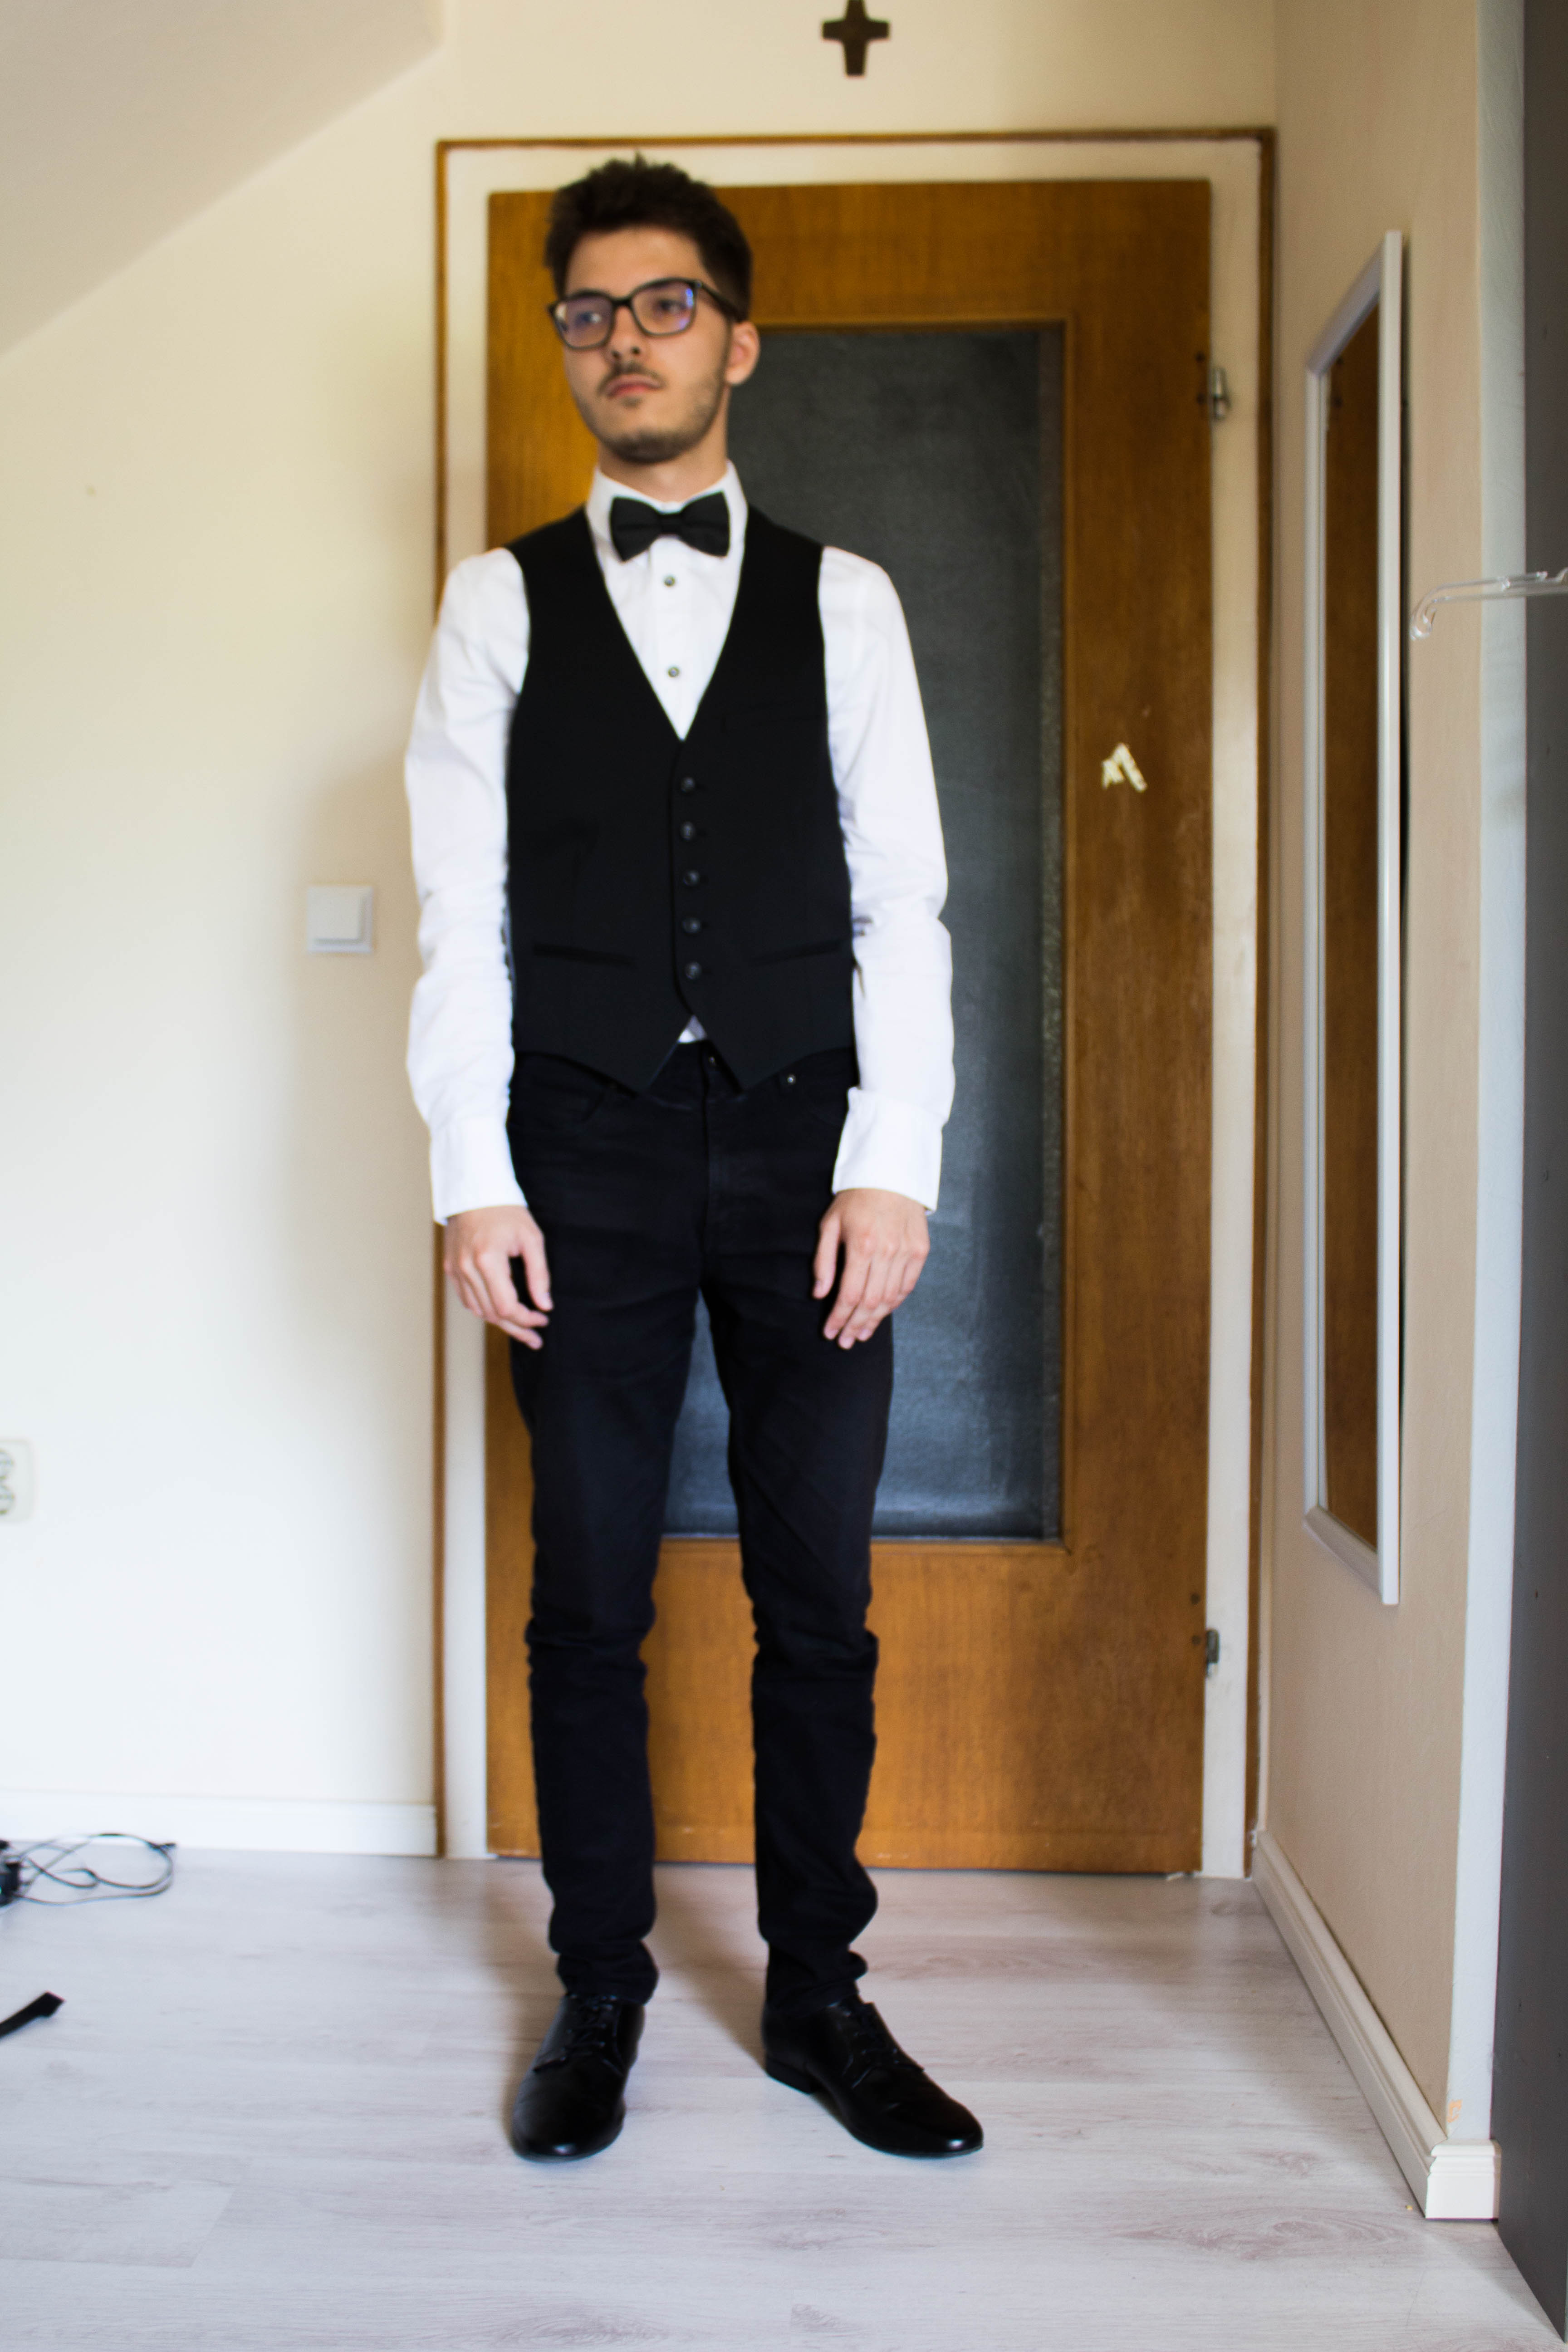 Welches Abiball Outfit? (Schule, Mode, Kleidung)